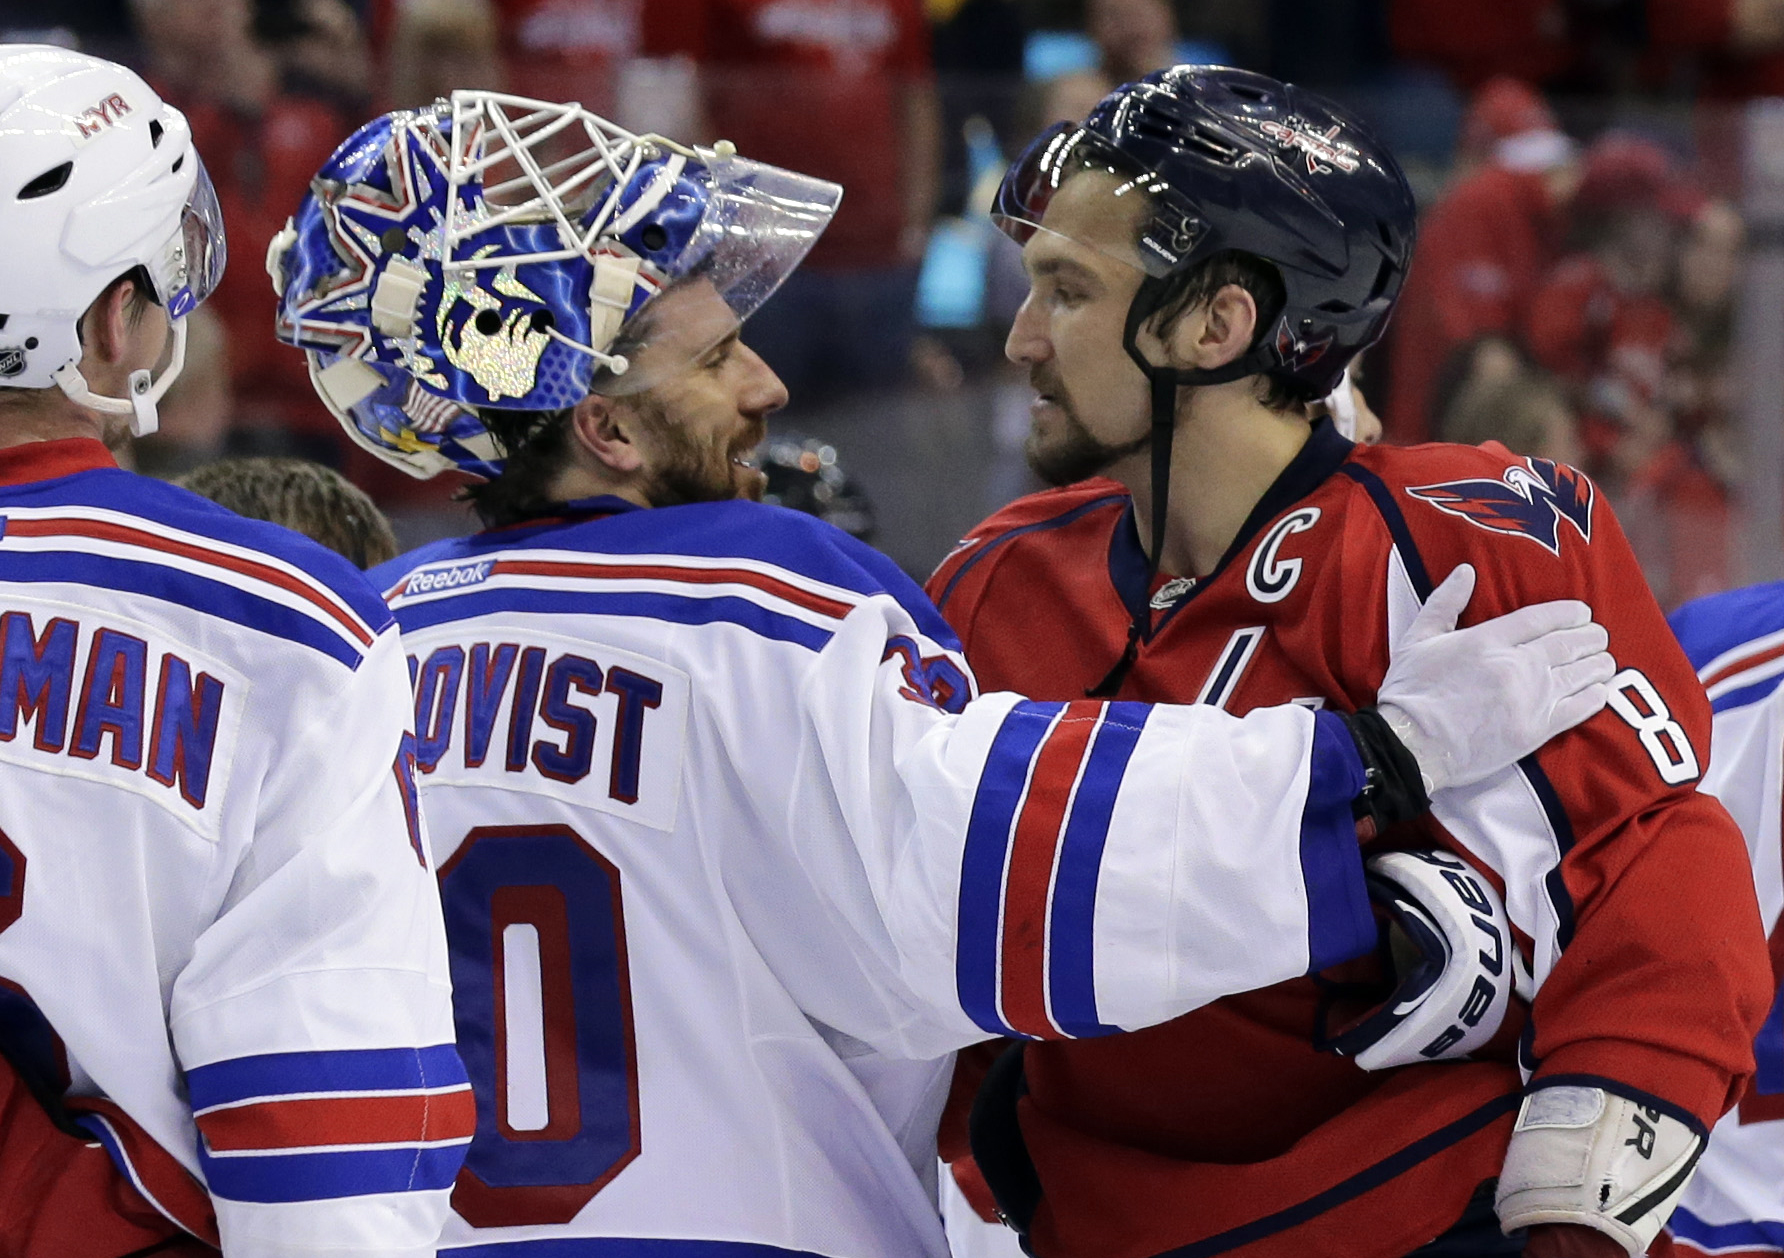 FILE - In this May 13, 2013, file photo, New York Rangers goalie Henrik Lundqvist (30), from Sweden, greets Washington Capitals left wing Alex Ovechkin (8), from Russia, after the Rangers won 5-0 in Game 7 in the first round of the NHL hockey Stanley Cup